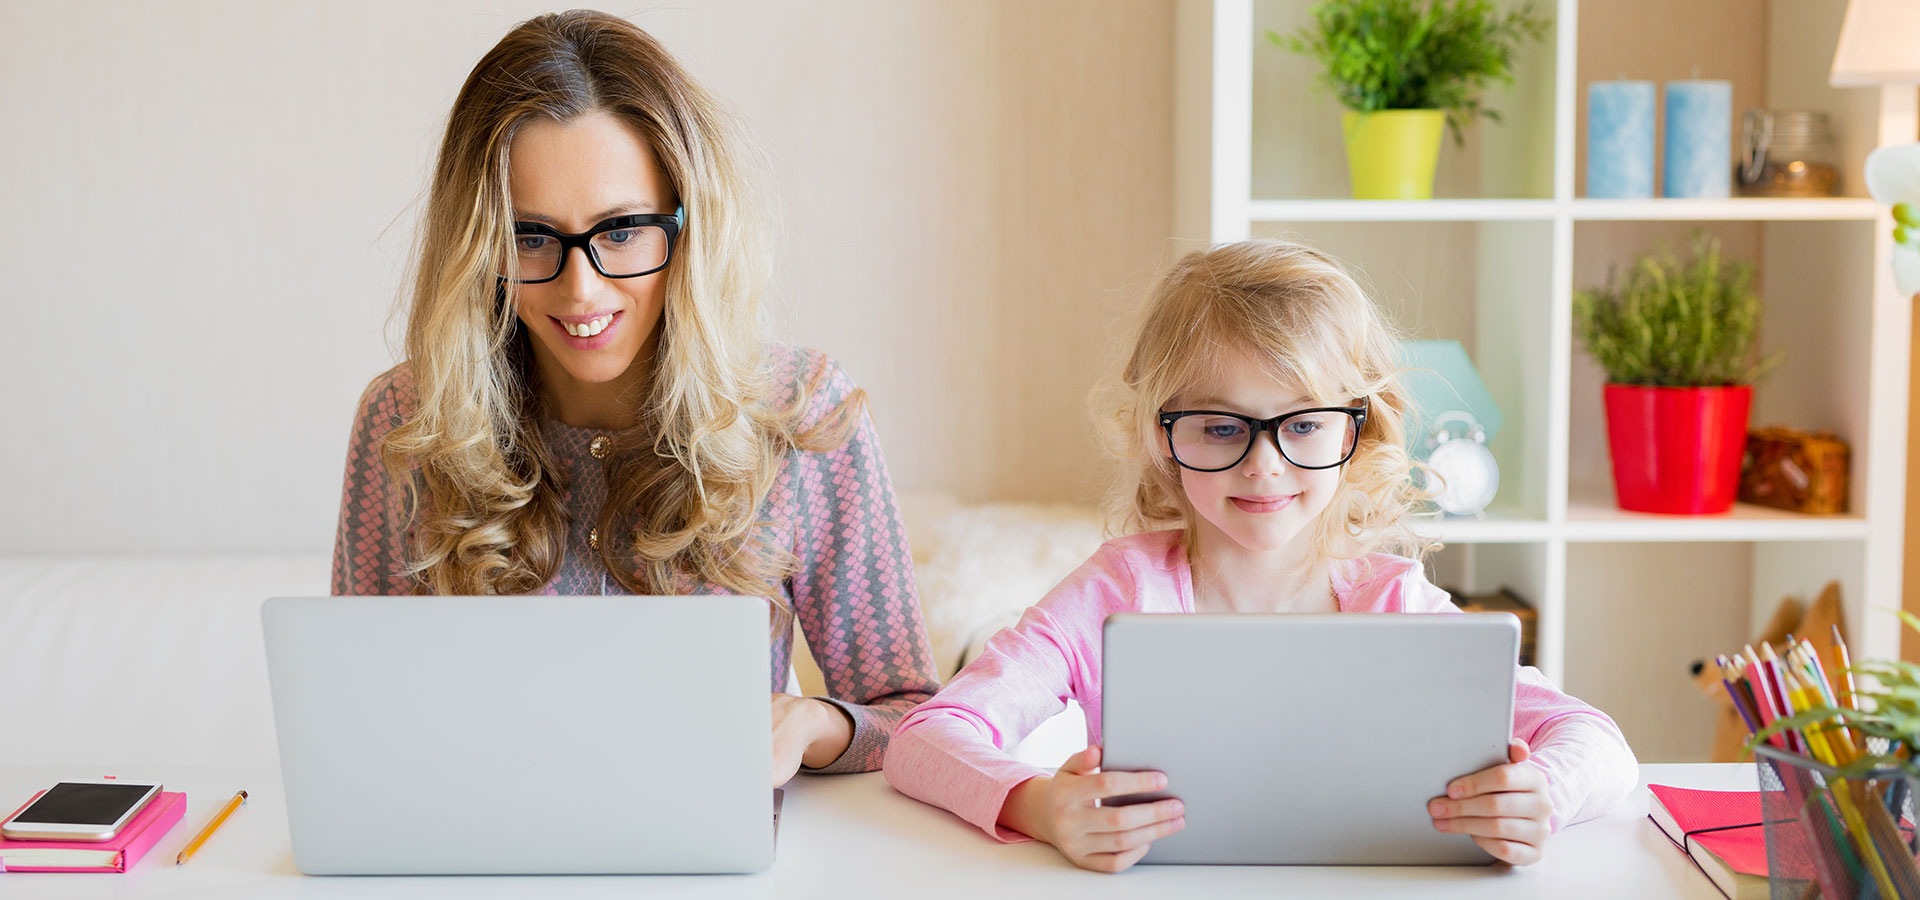 Mother and daughter sitting at table, both on laptops working